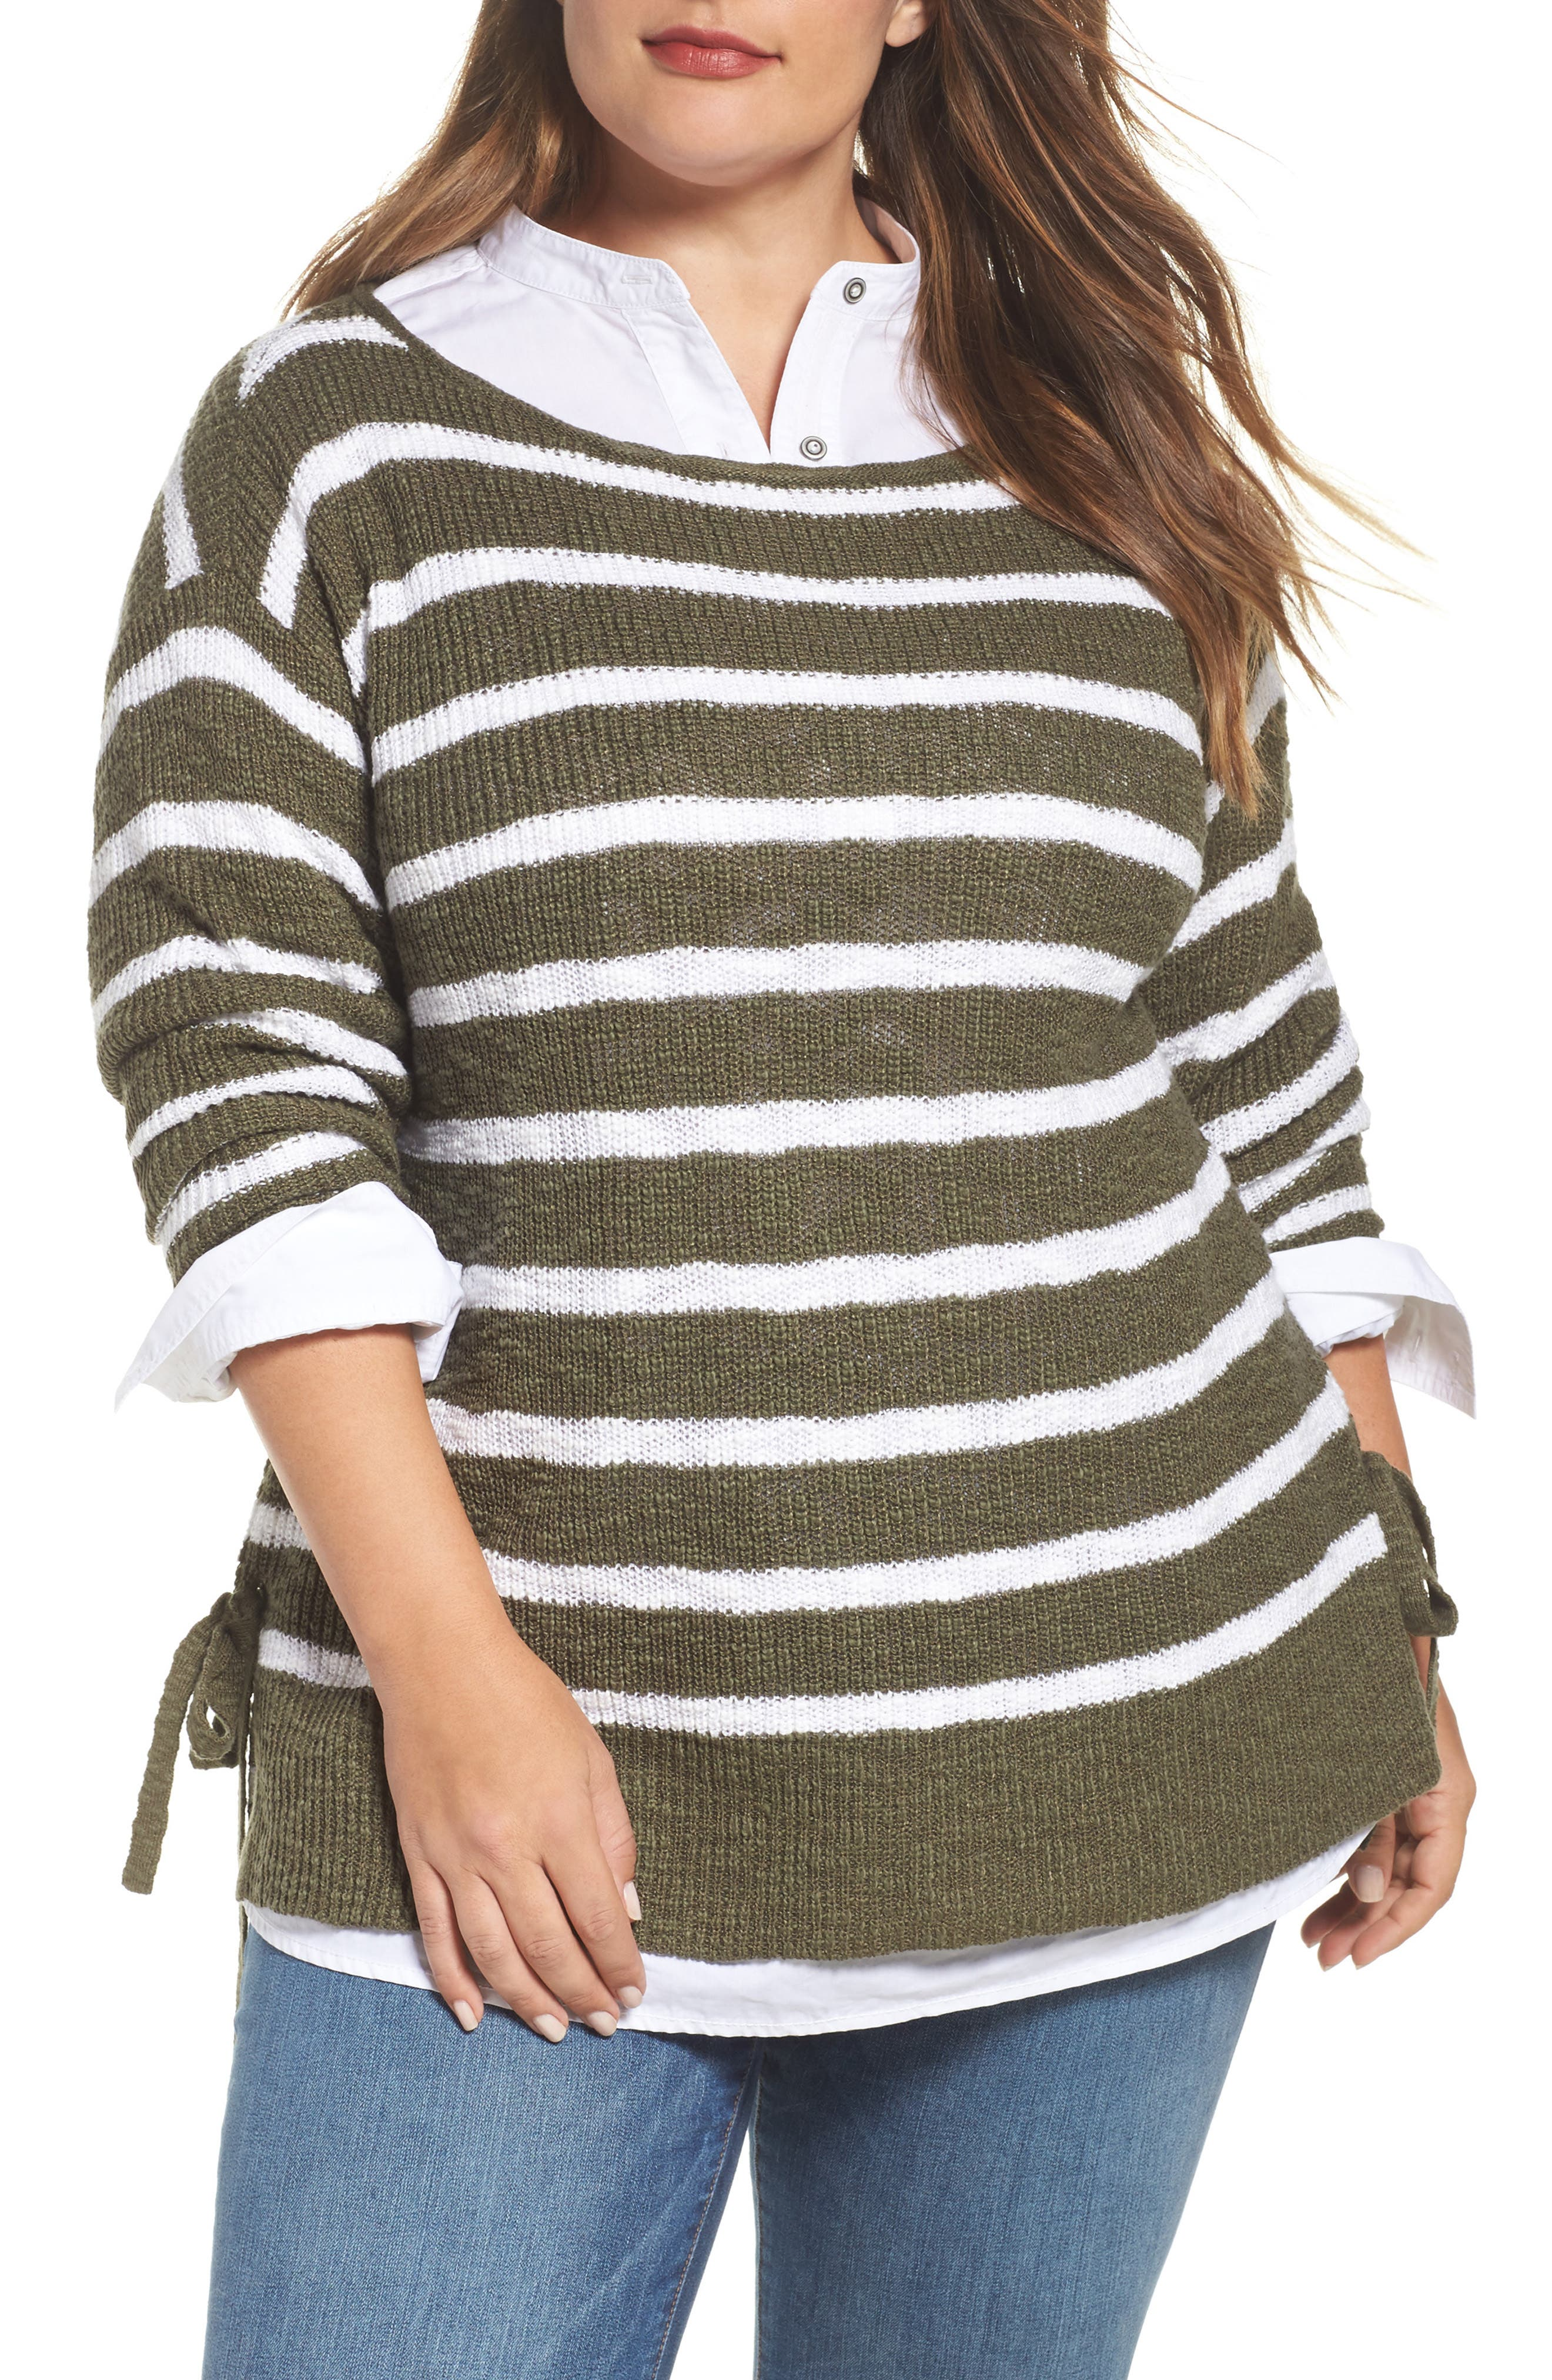 Alternate Image 1 Selected - Caslon® Tunic Sweater with Side Ties (Plus Size)